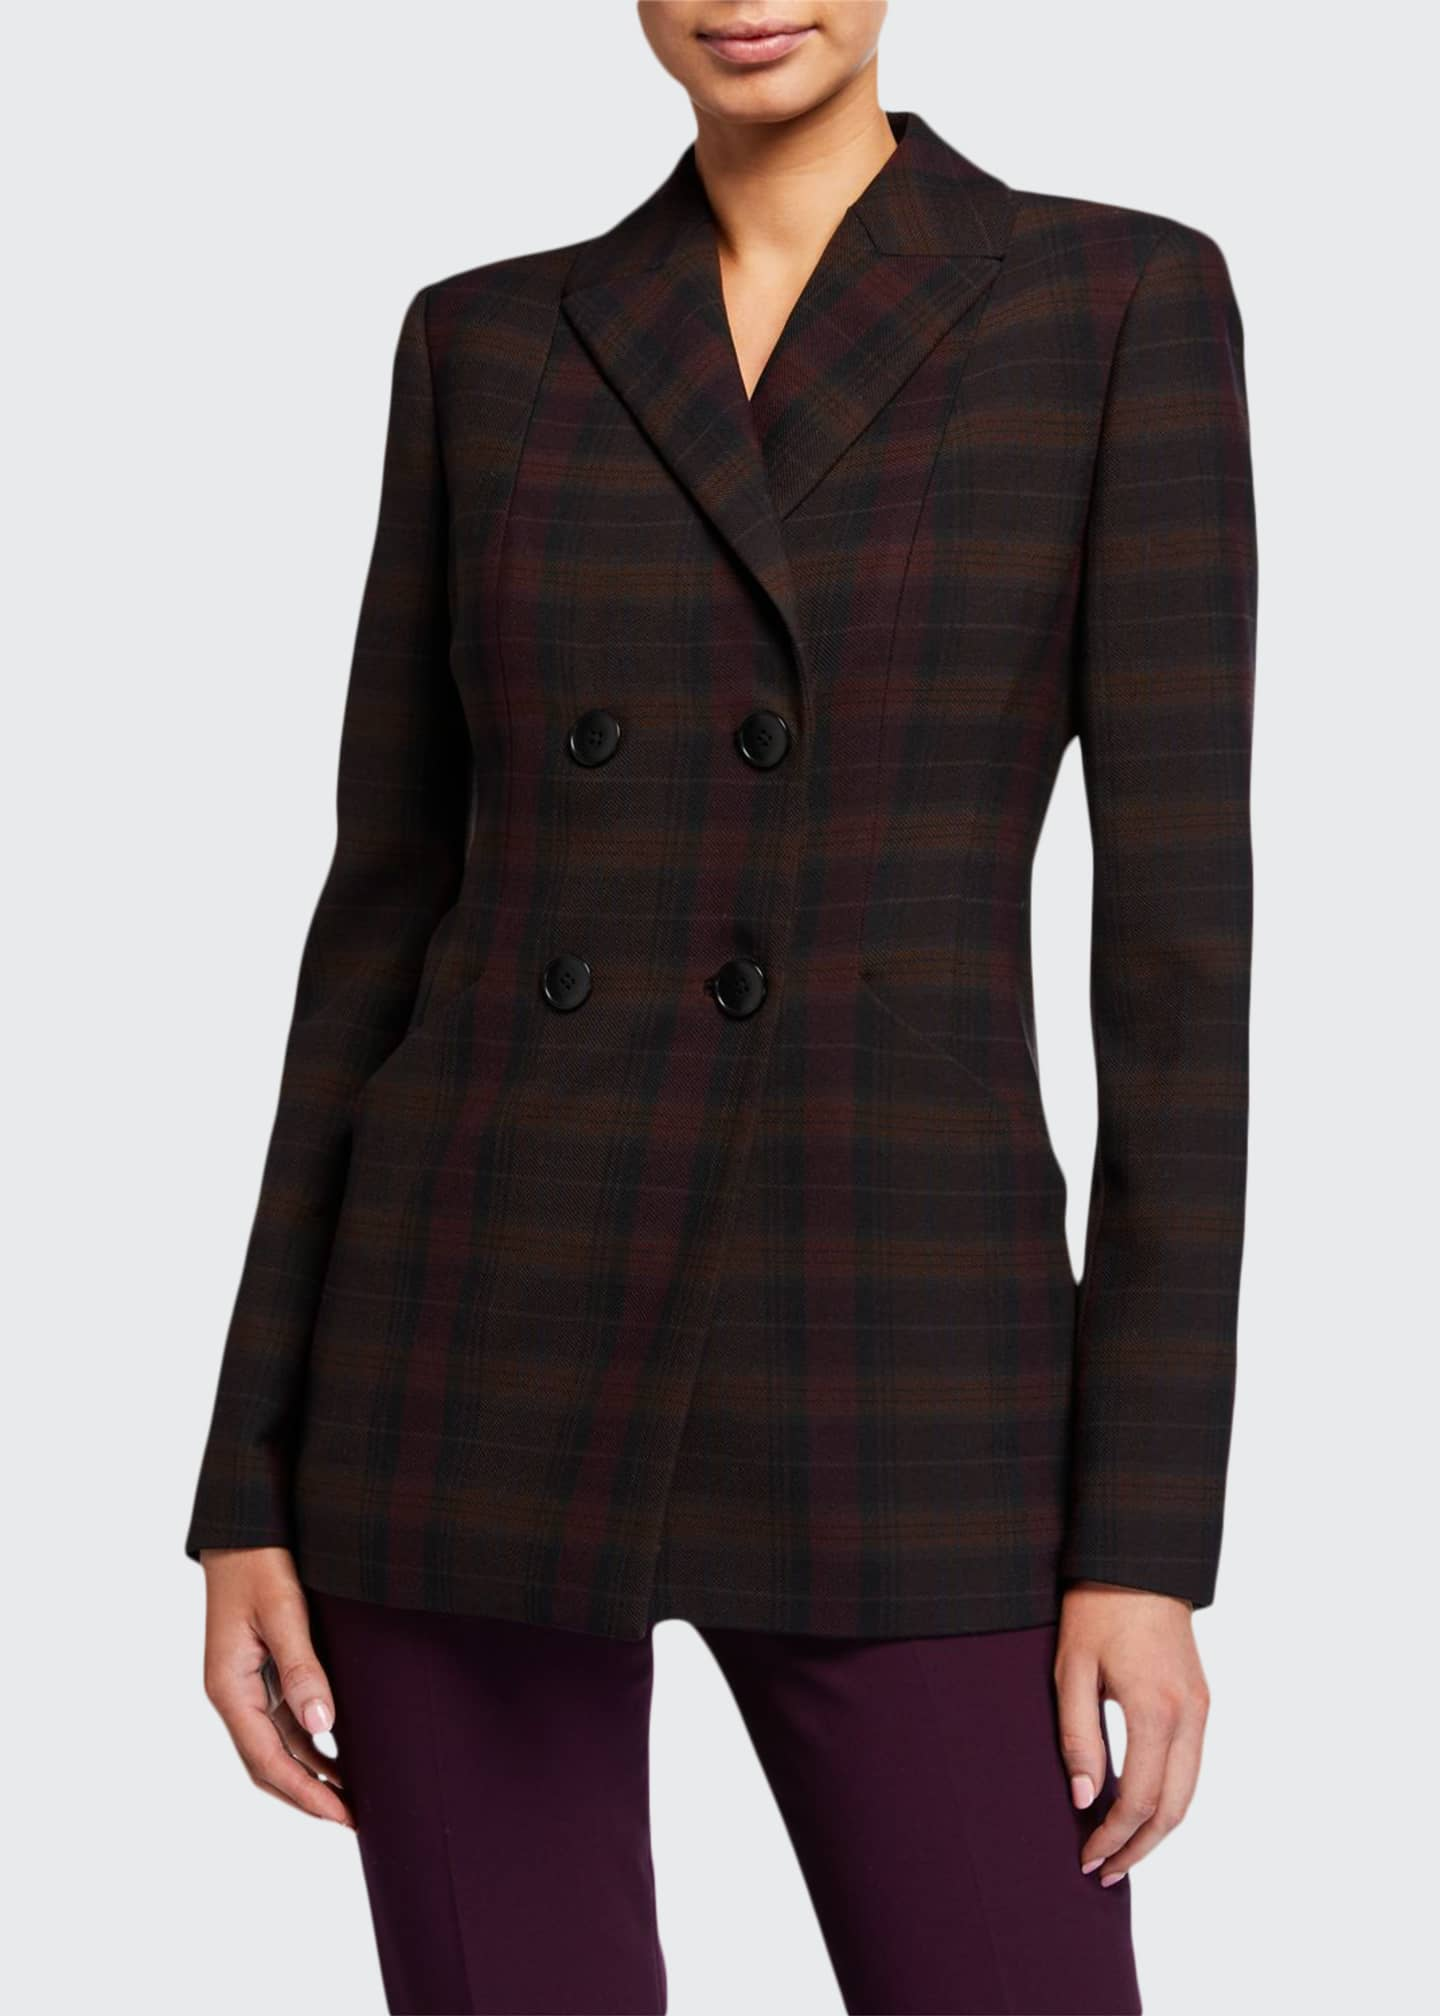 Elie Tahari Launie Plaid Double-Breasted Jacket